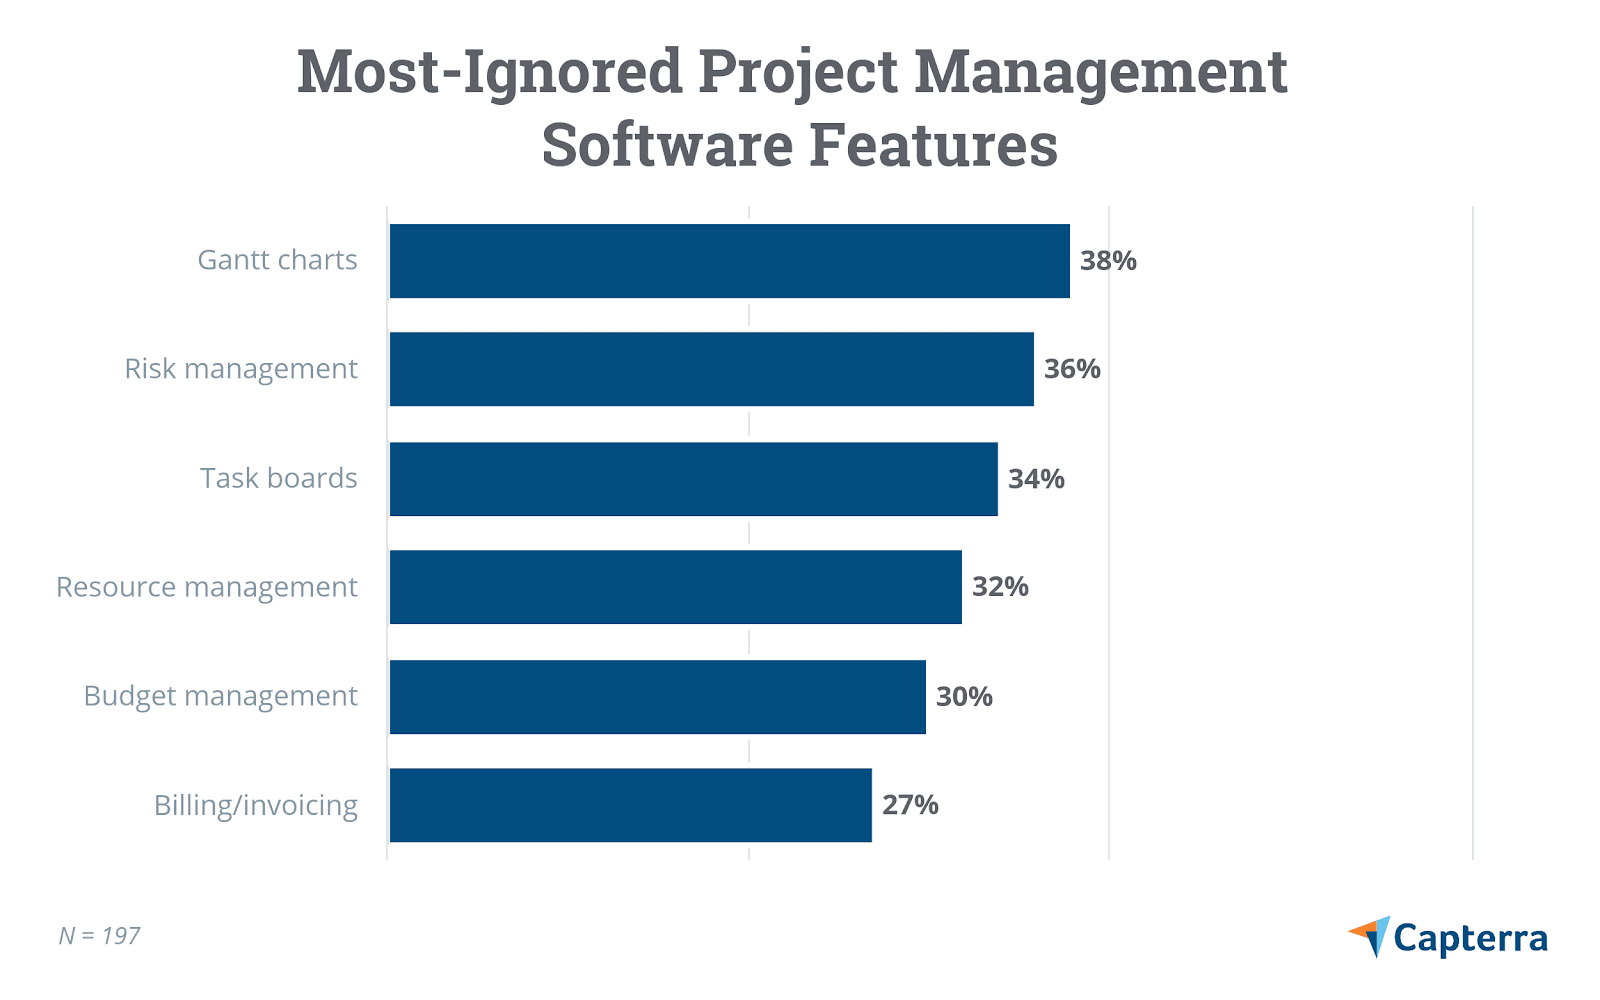 Gantt charts are the most ignored PM feature according to this survey